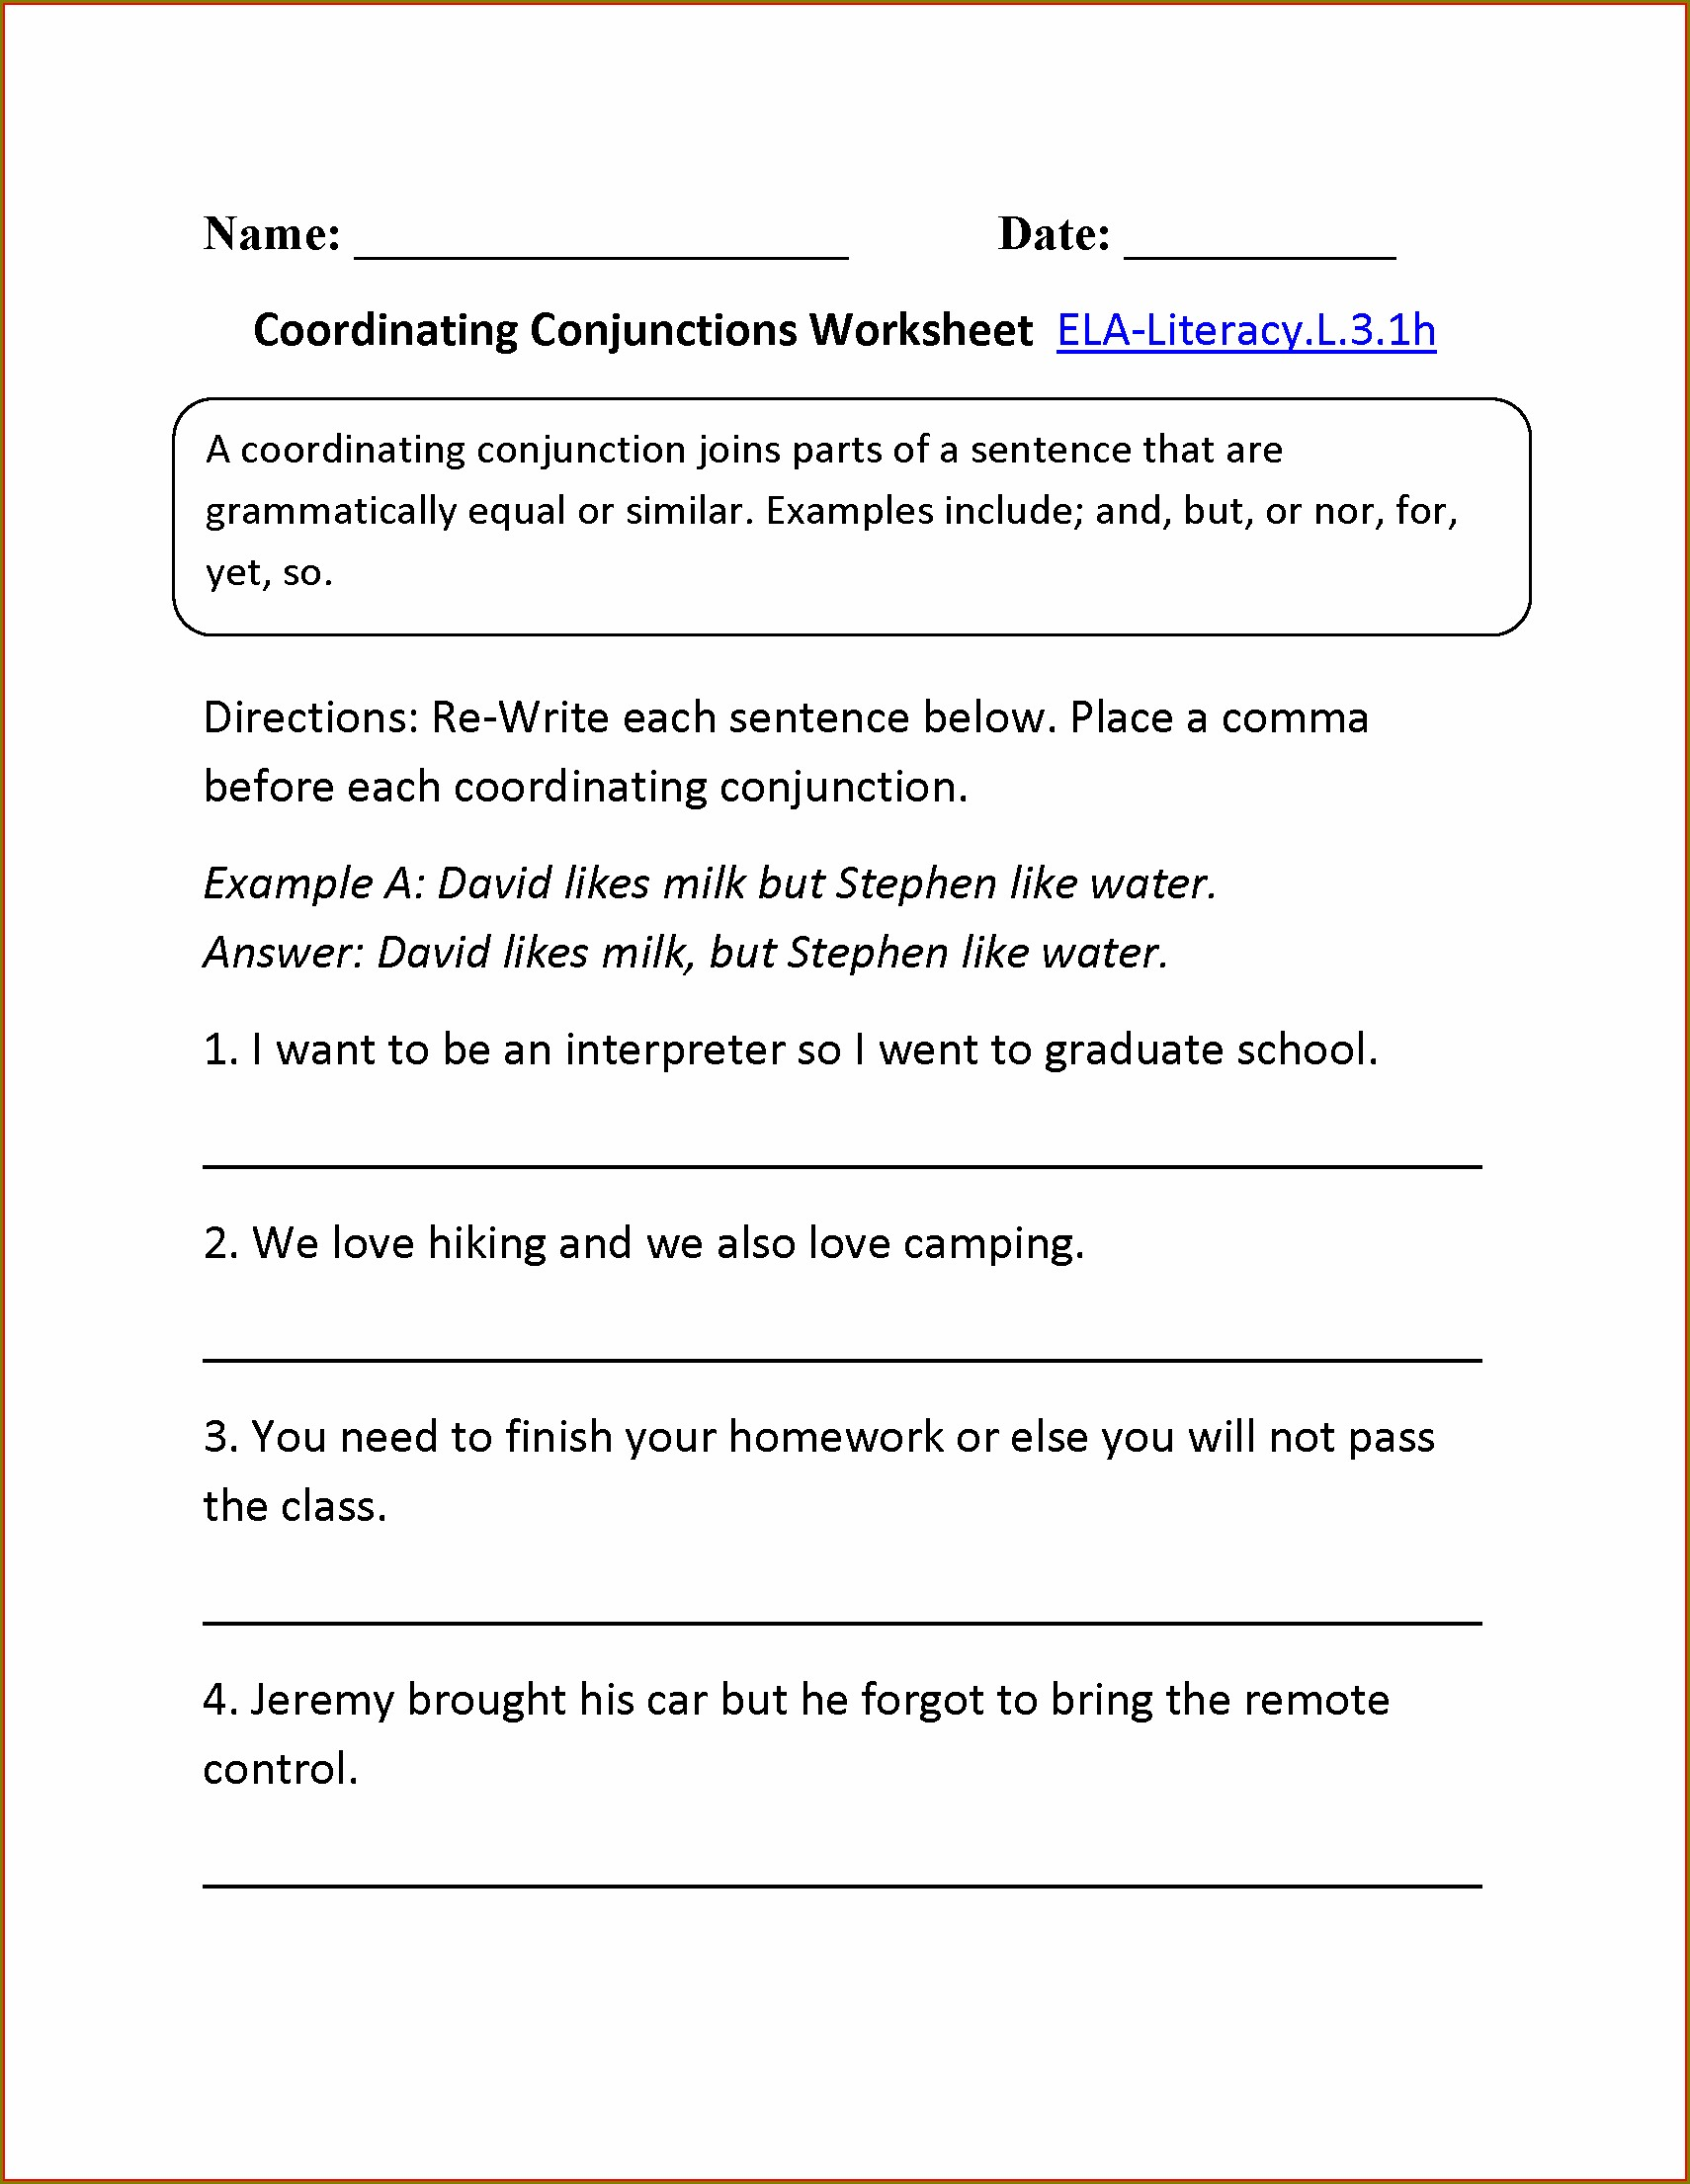 Conjunctions Worksheets For Grade 5 With Answers